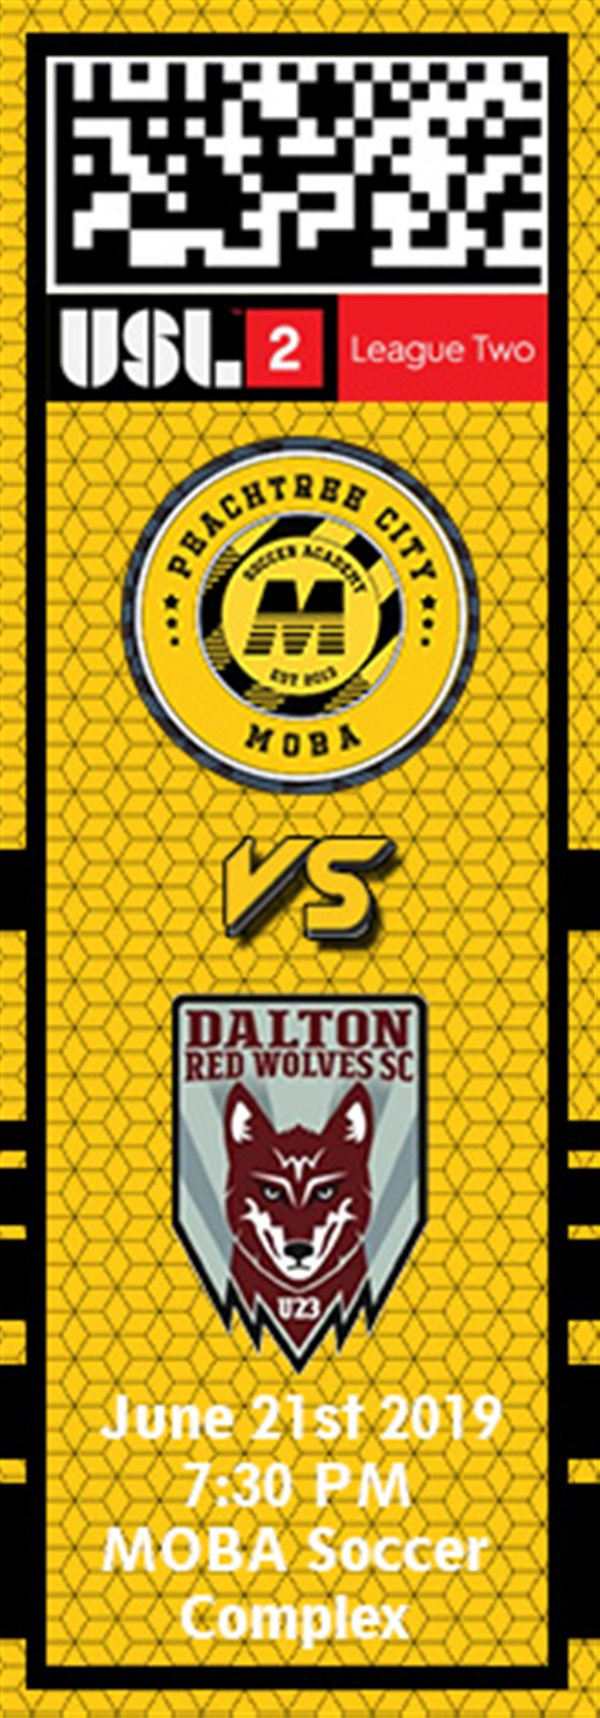 Get Information and buy tickets to PTC MOBA vs. Dalton Red Wolves USL2 on MOBA Soccer Academy